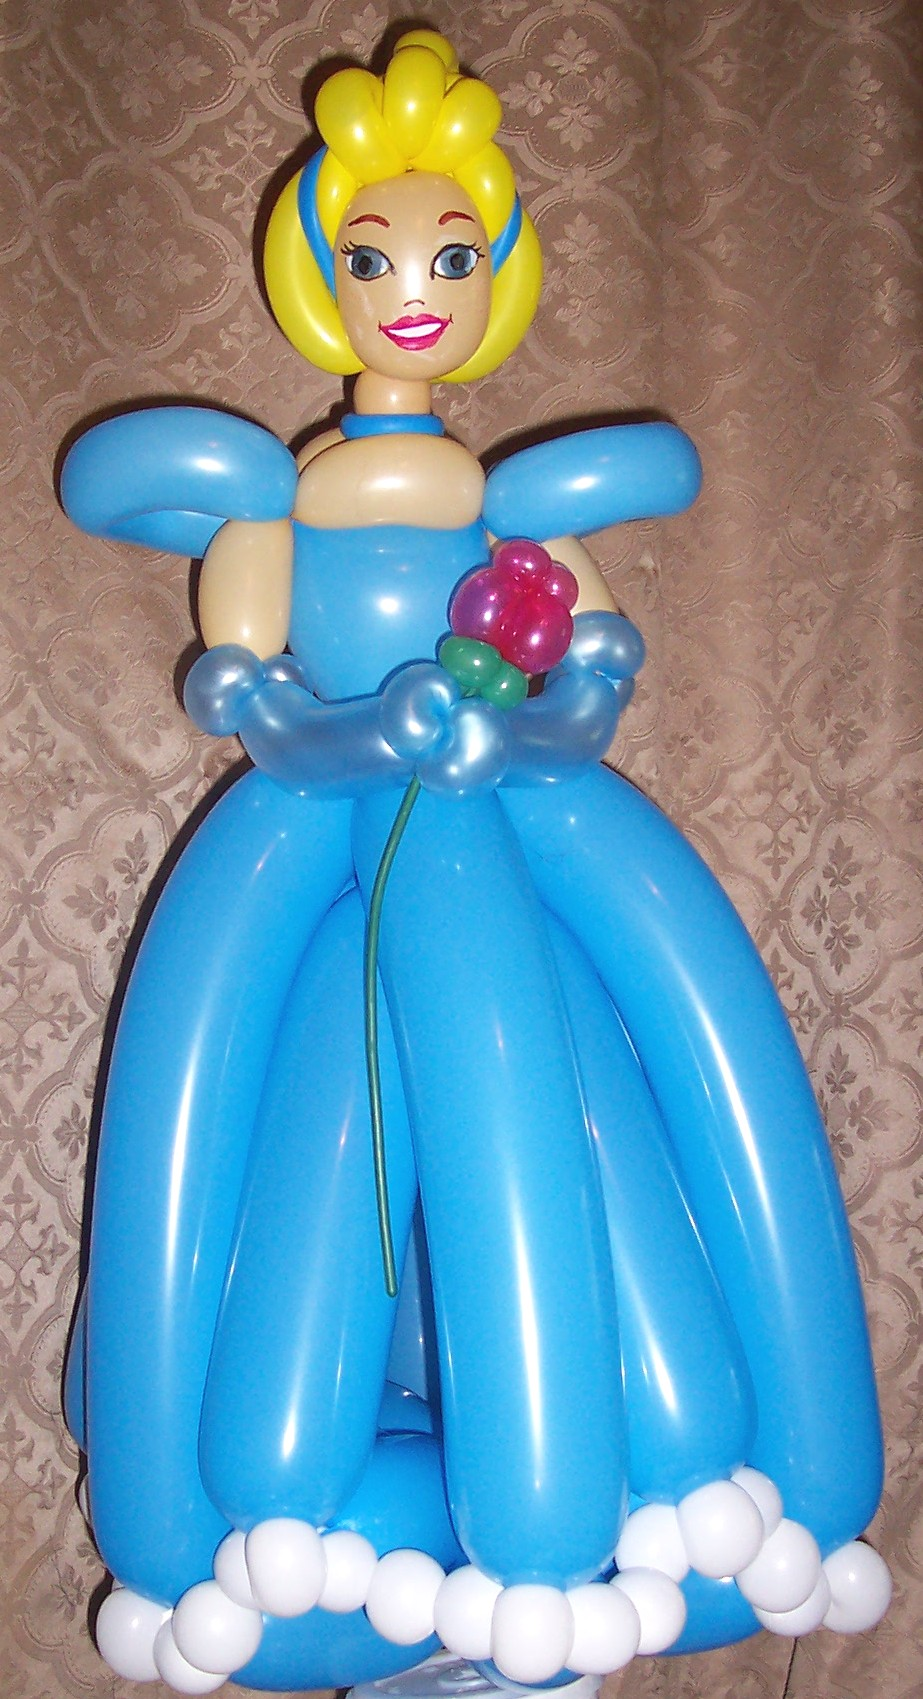 Cool balloon picture 62043